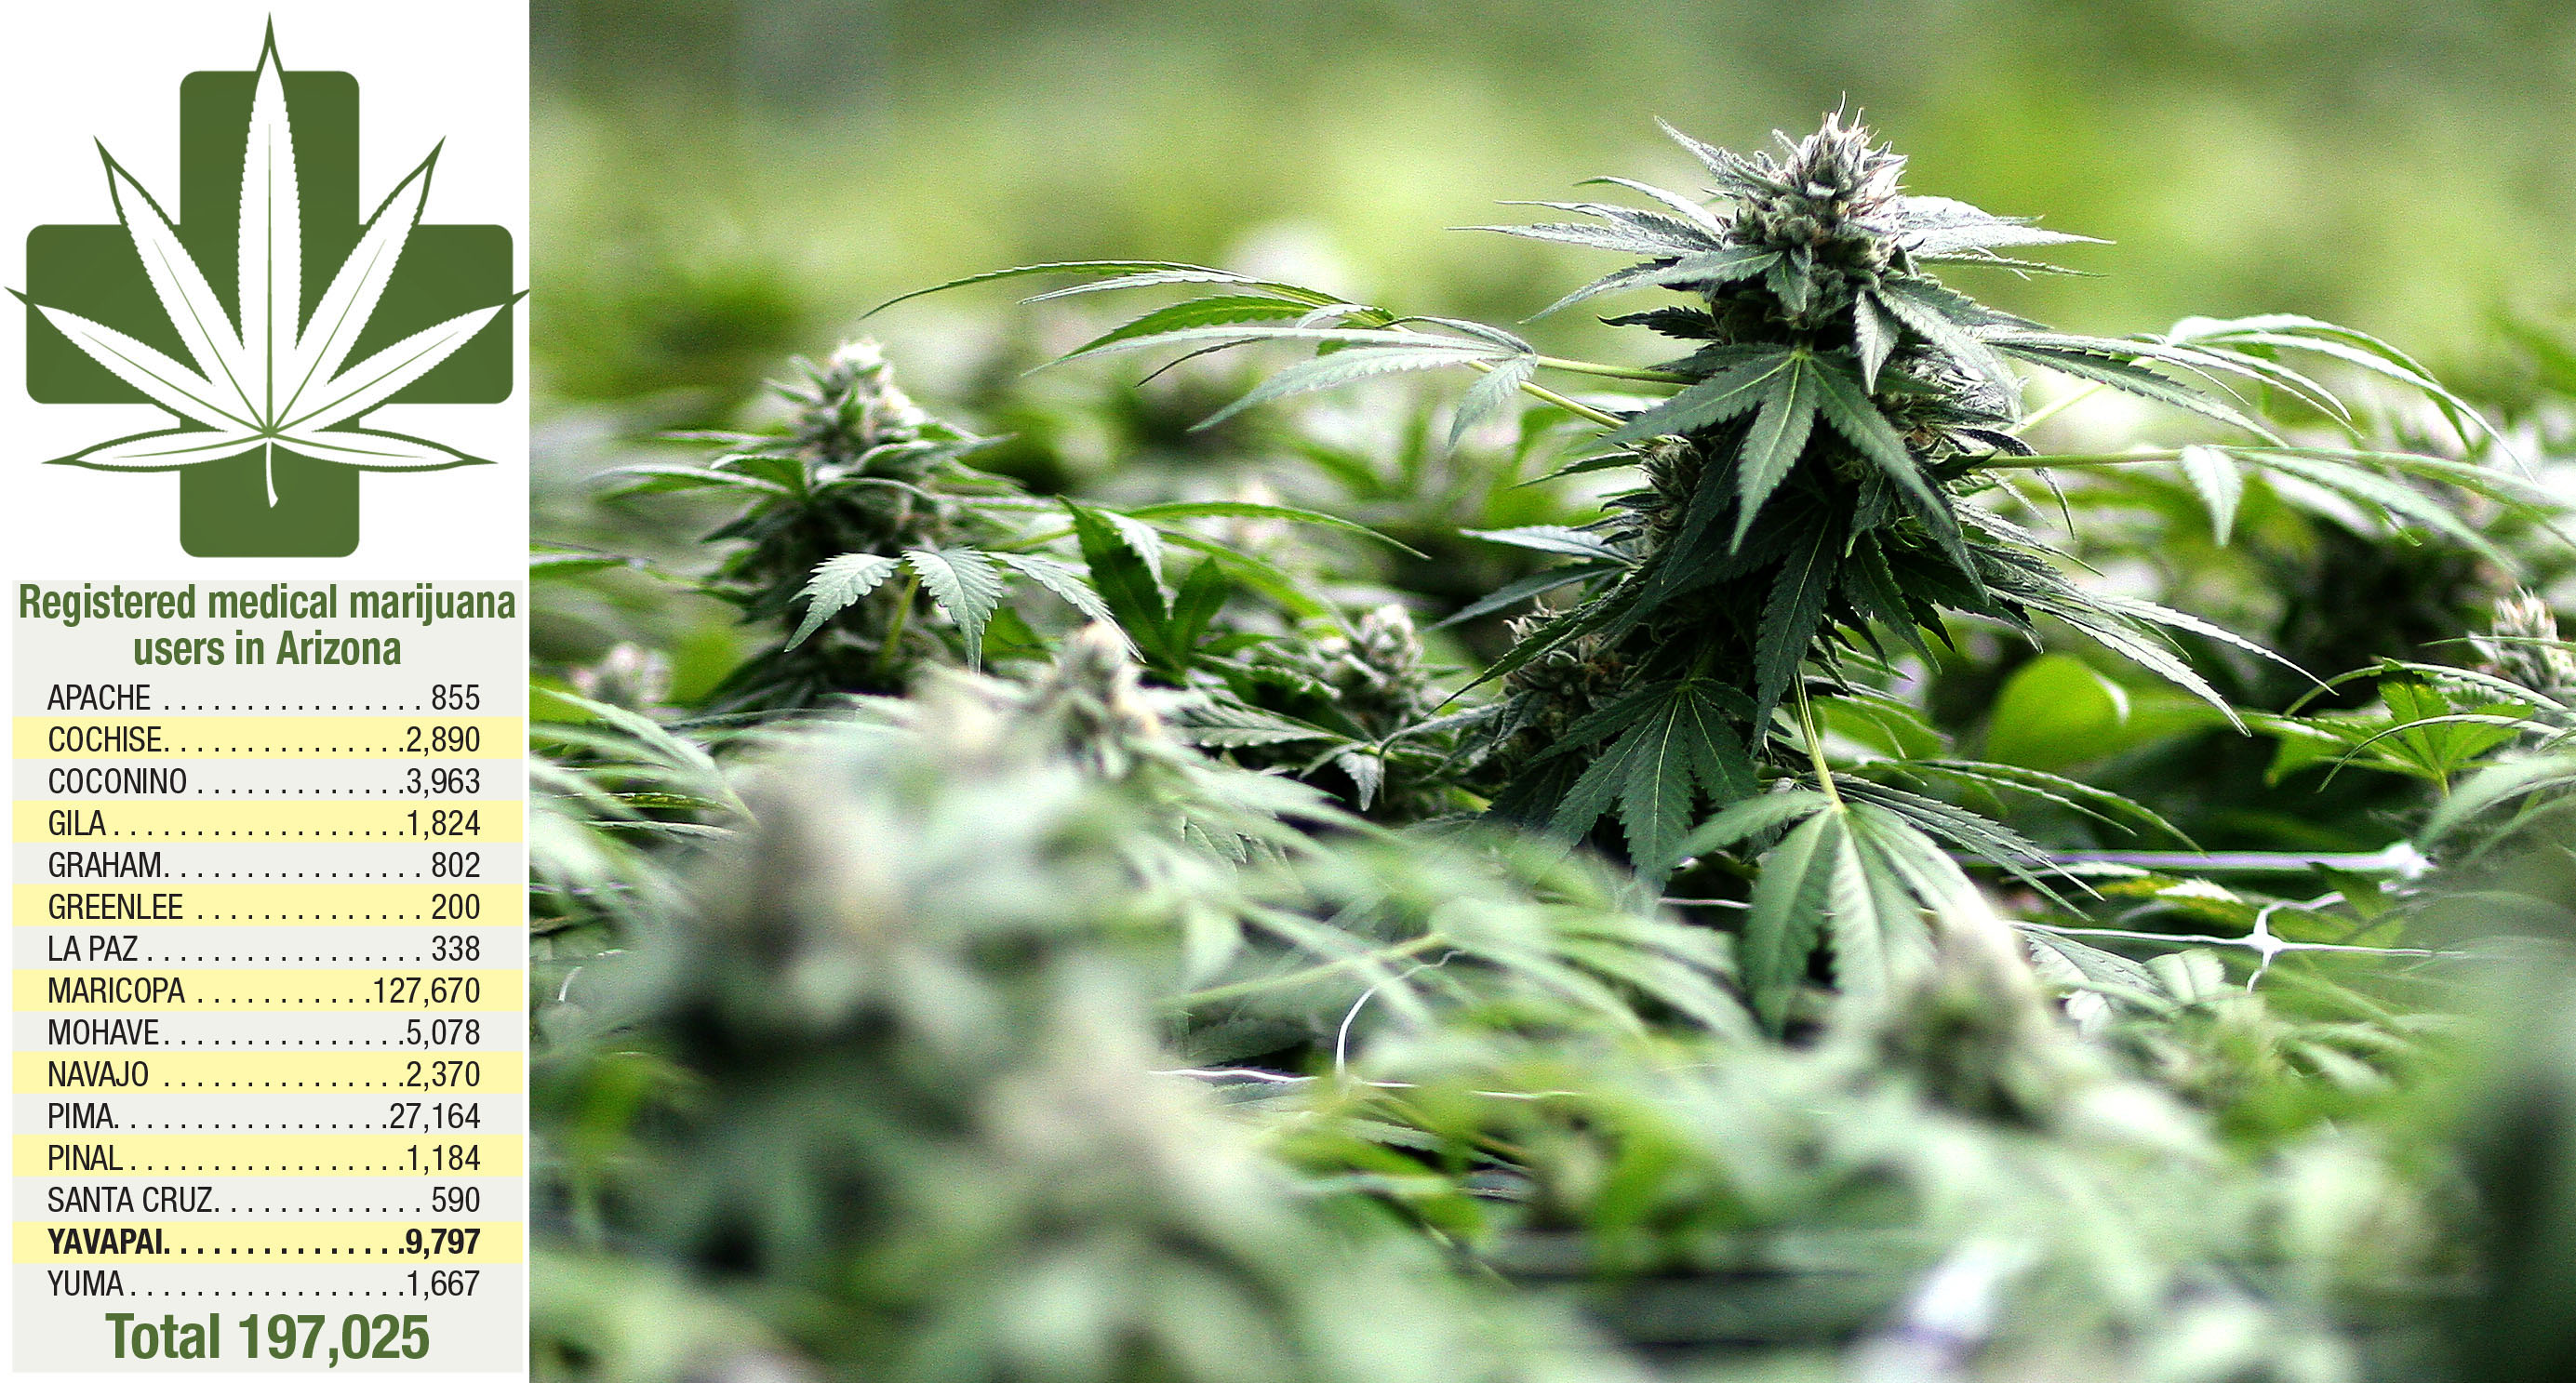 State changes medical marijuana laws to benefit users | The